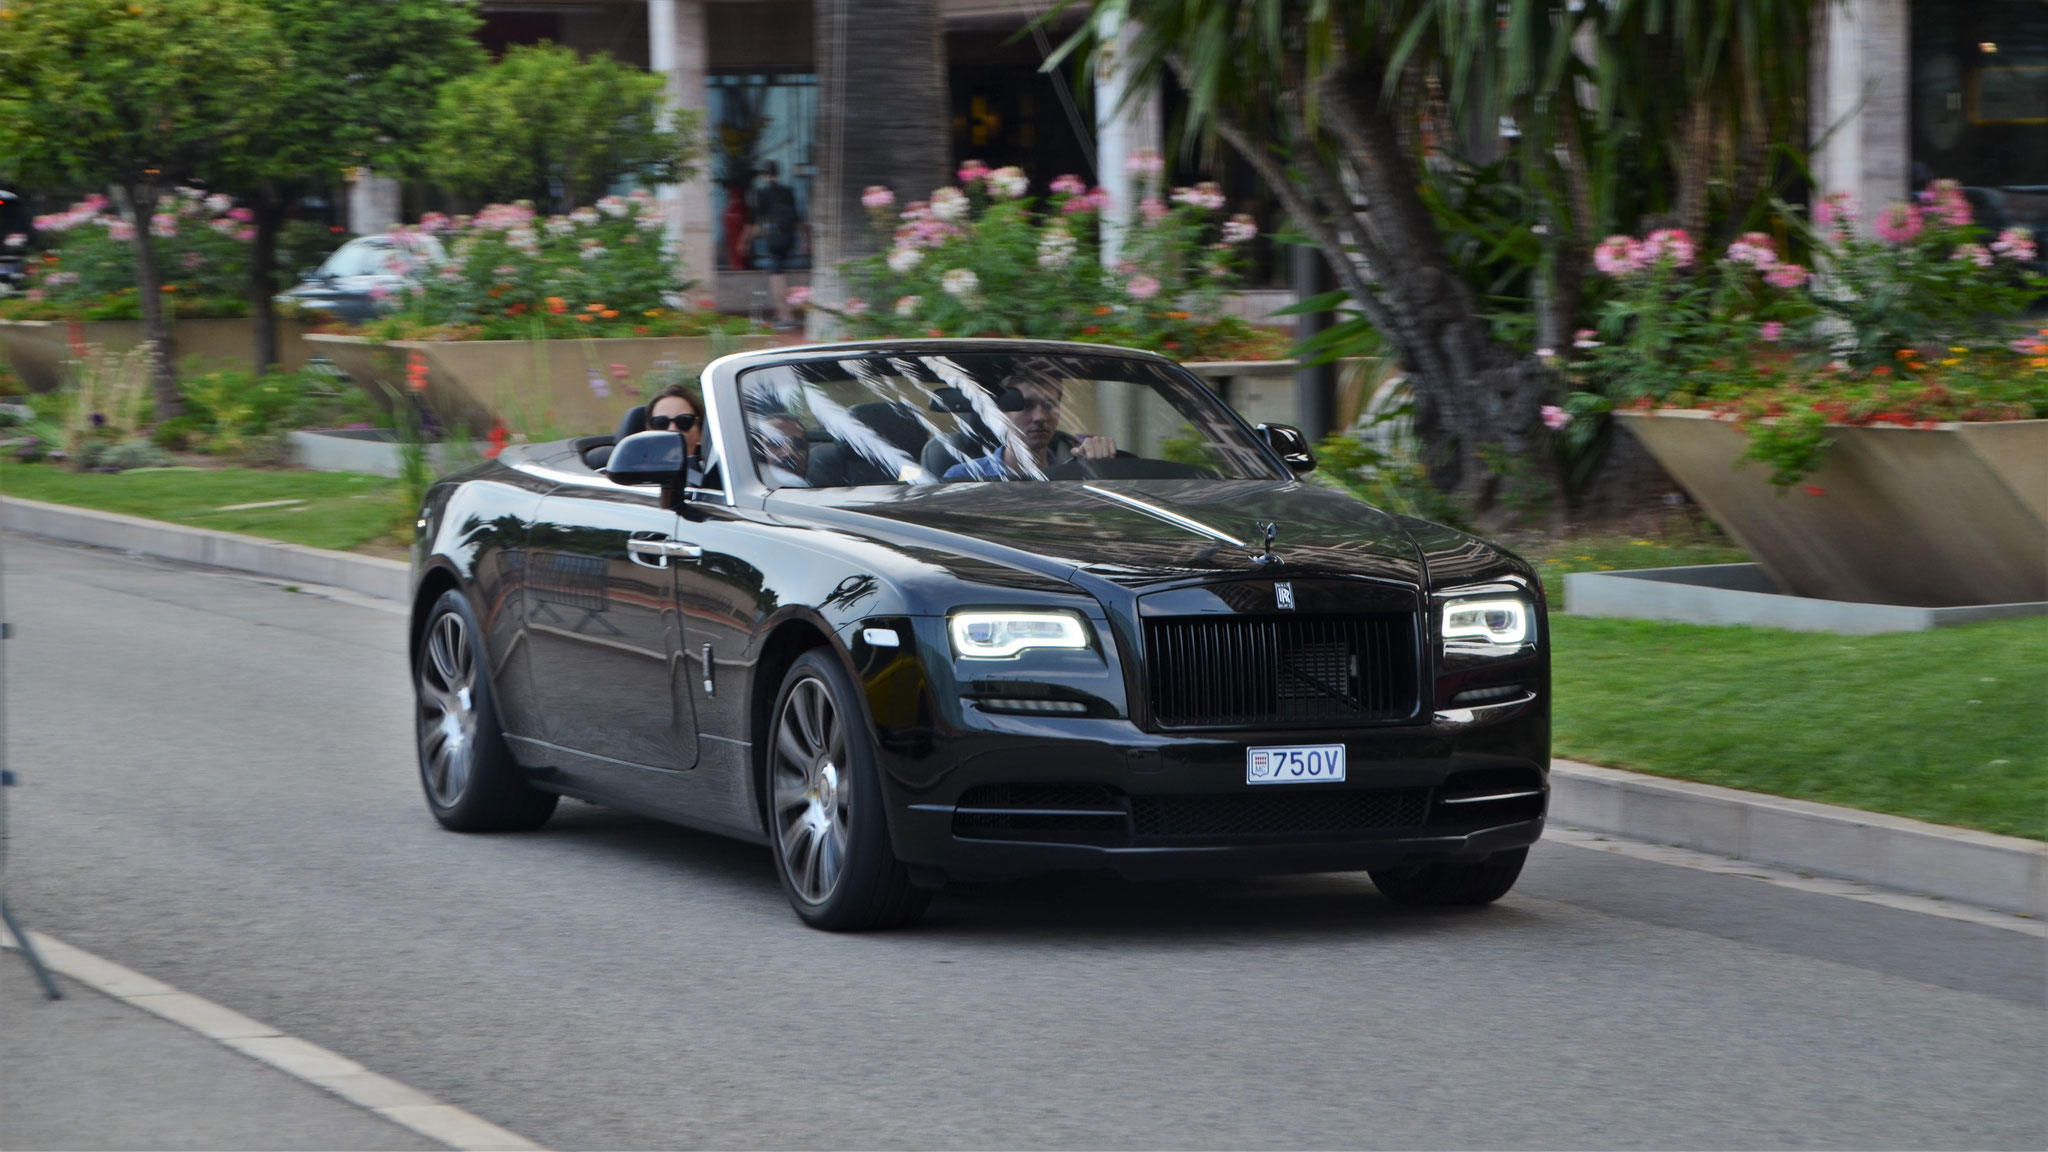 Rolls Royce Dawn - 750V (MC)